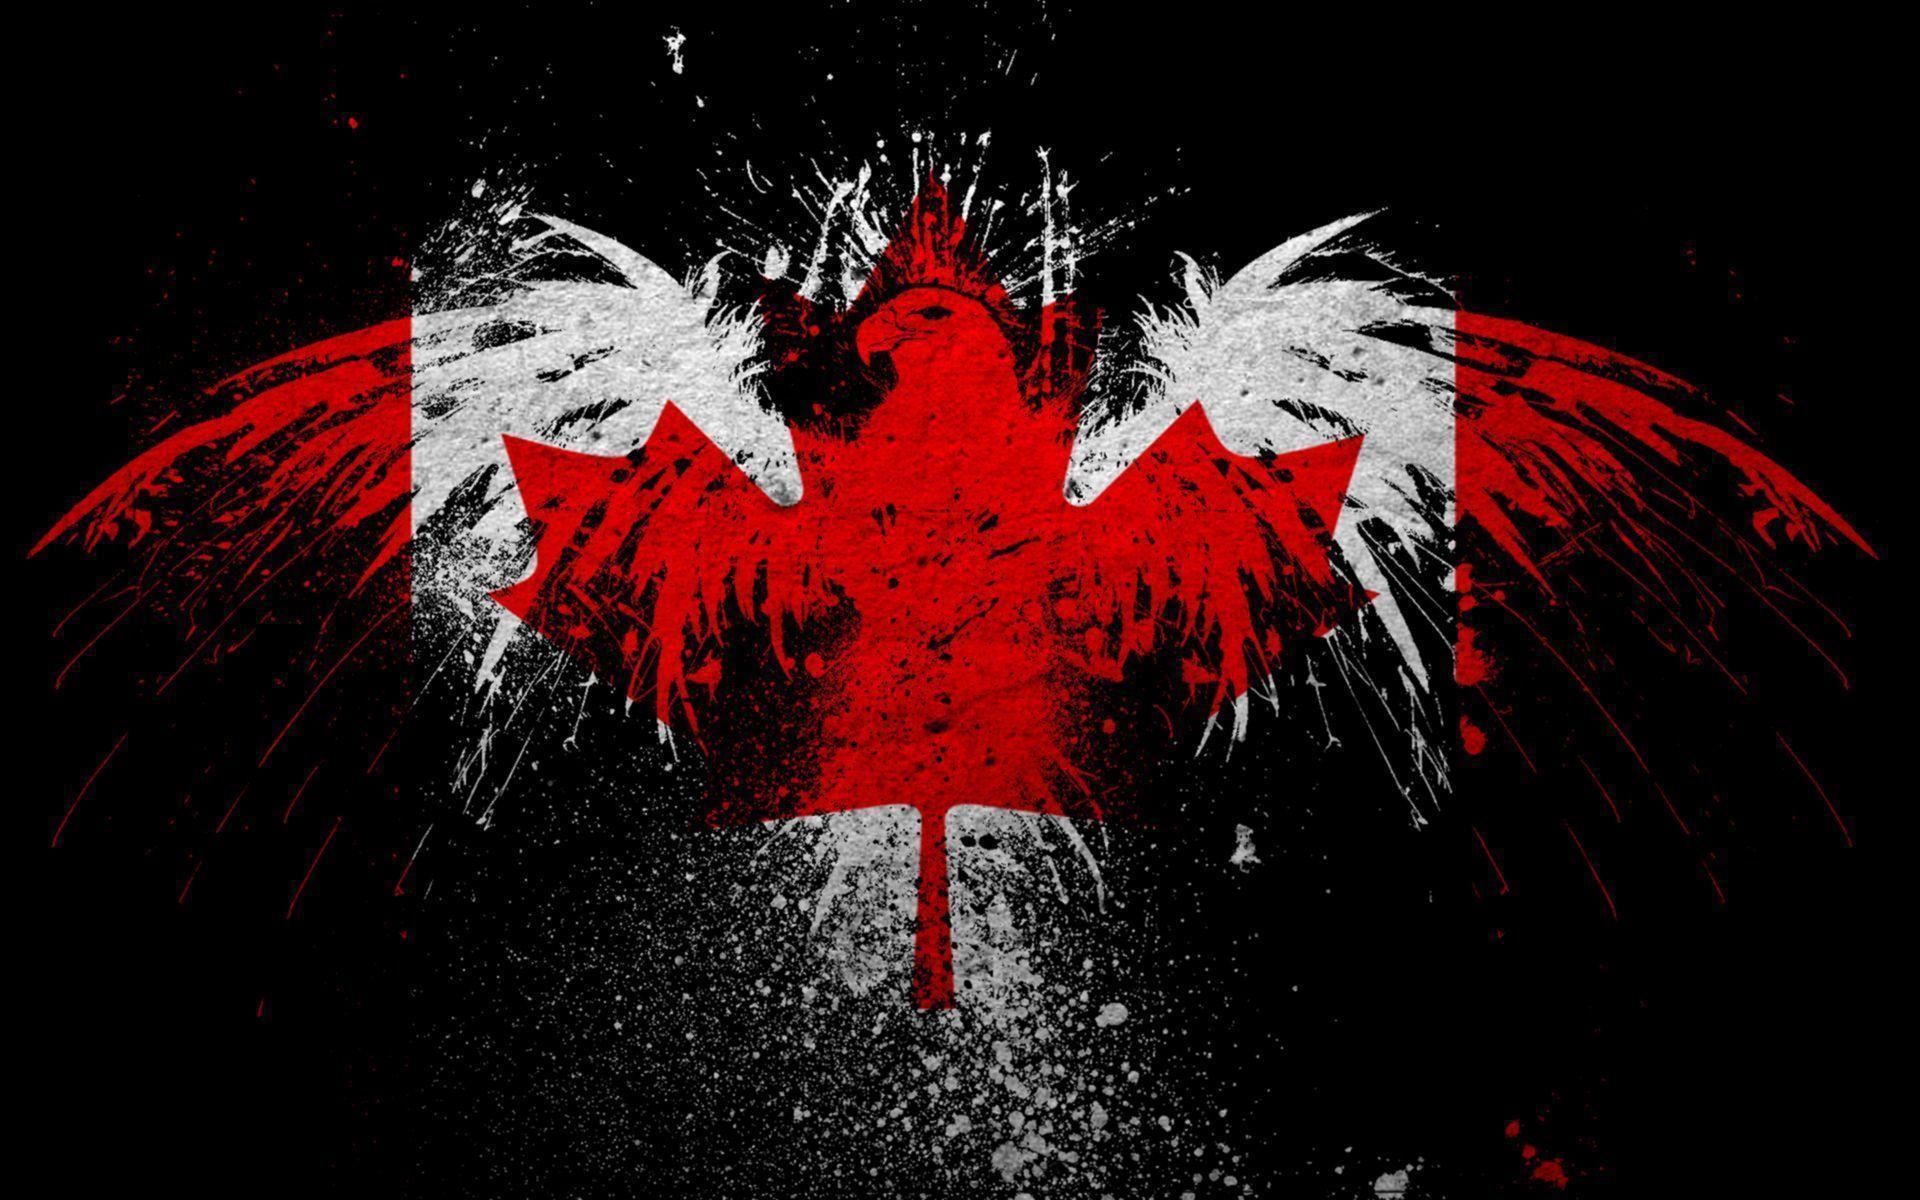 Canadian Wallpapers - Wallpaper Cave